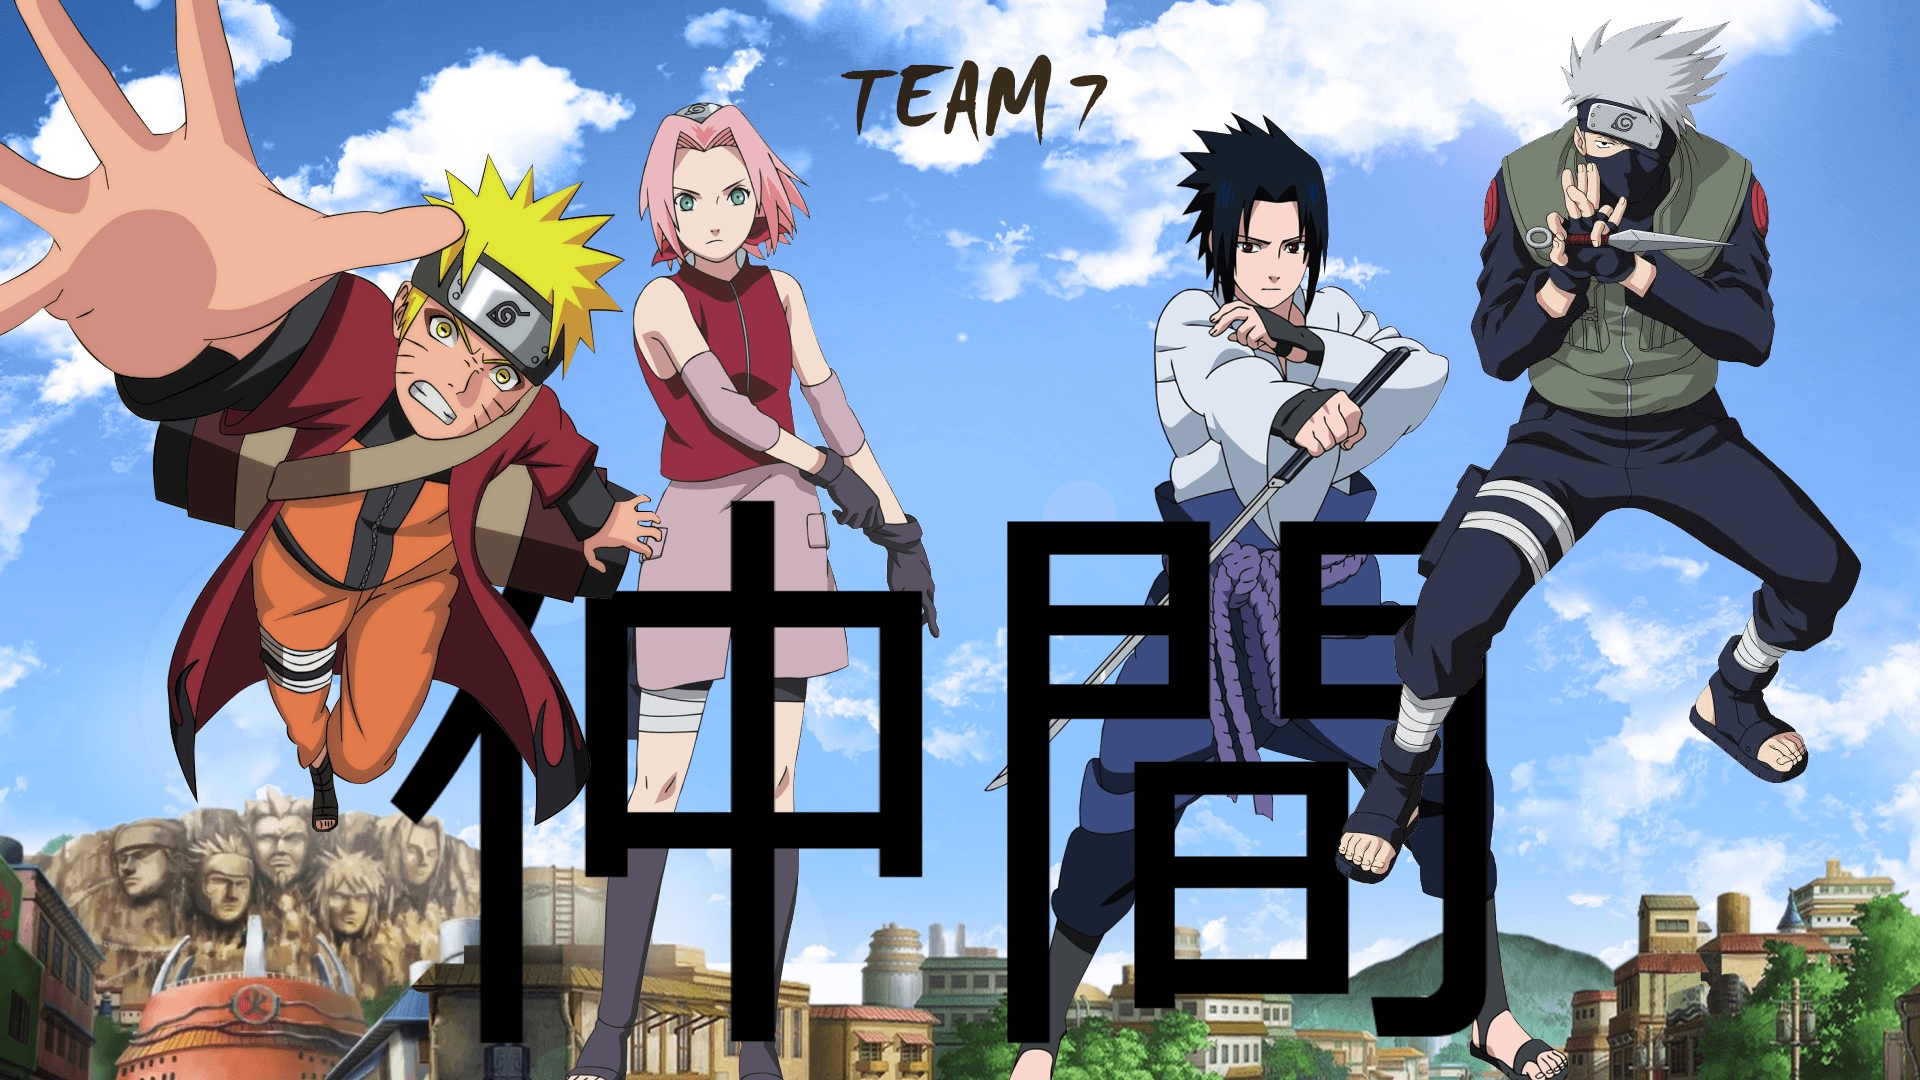 Team 7 Comic Wallpapers | WallpapersIn4k.net